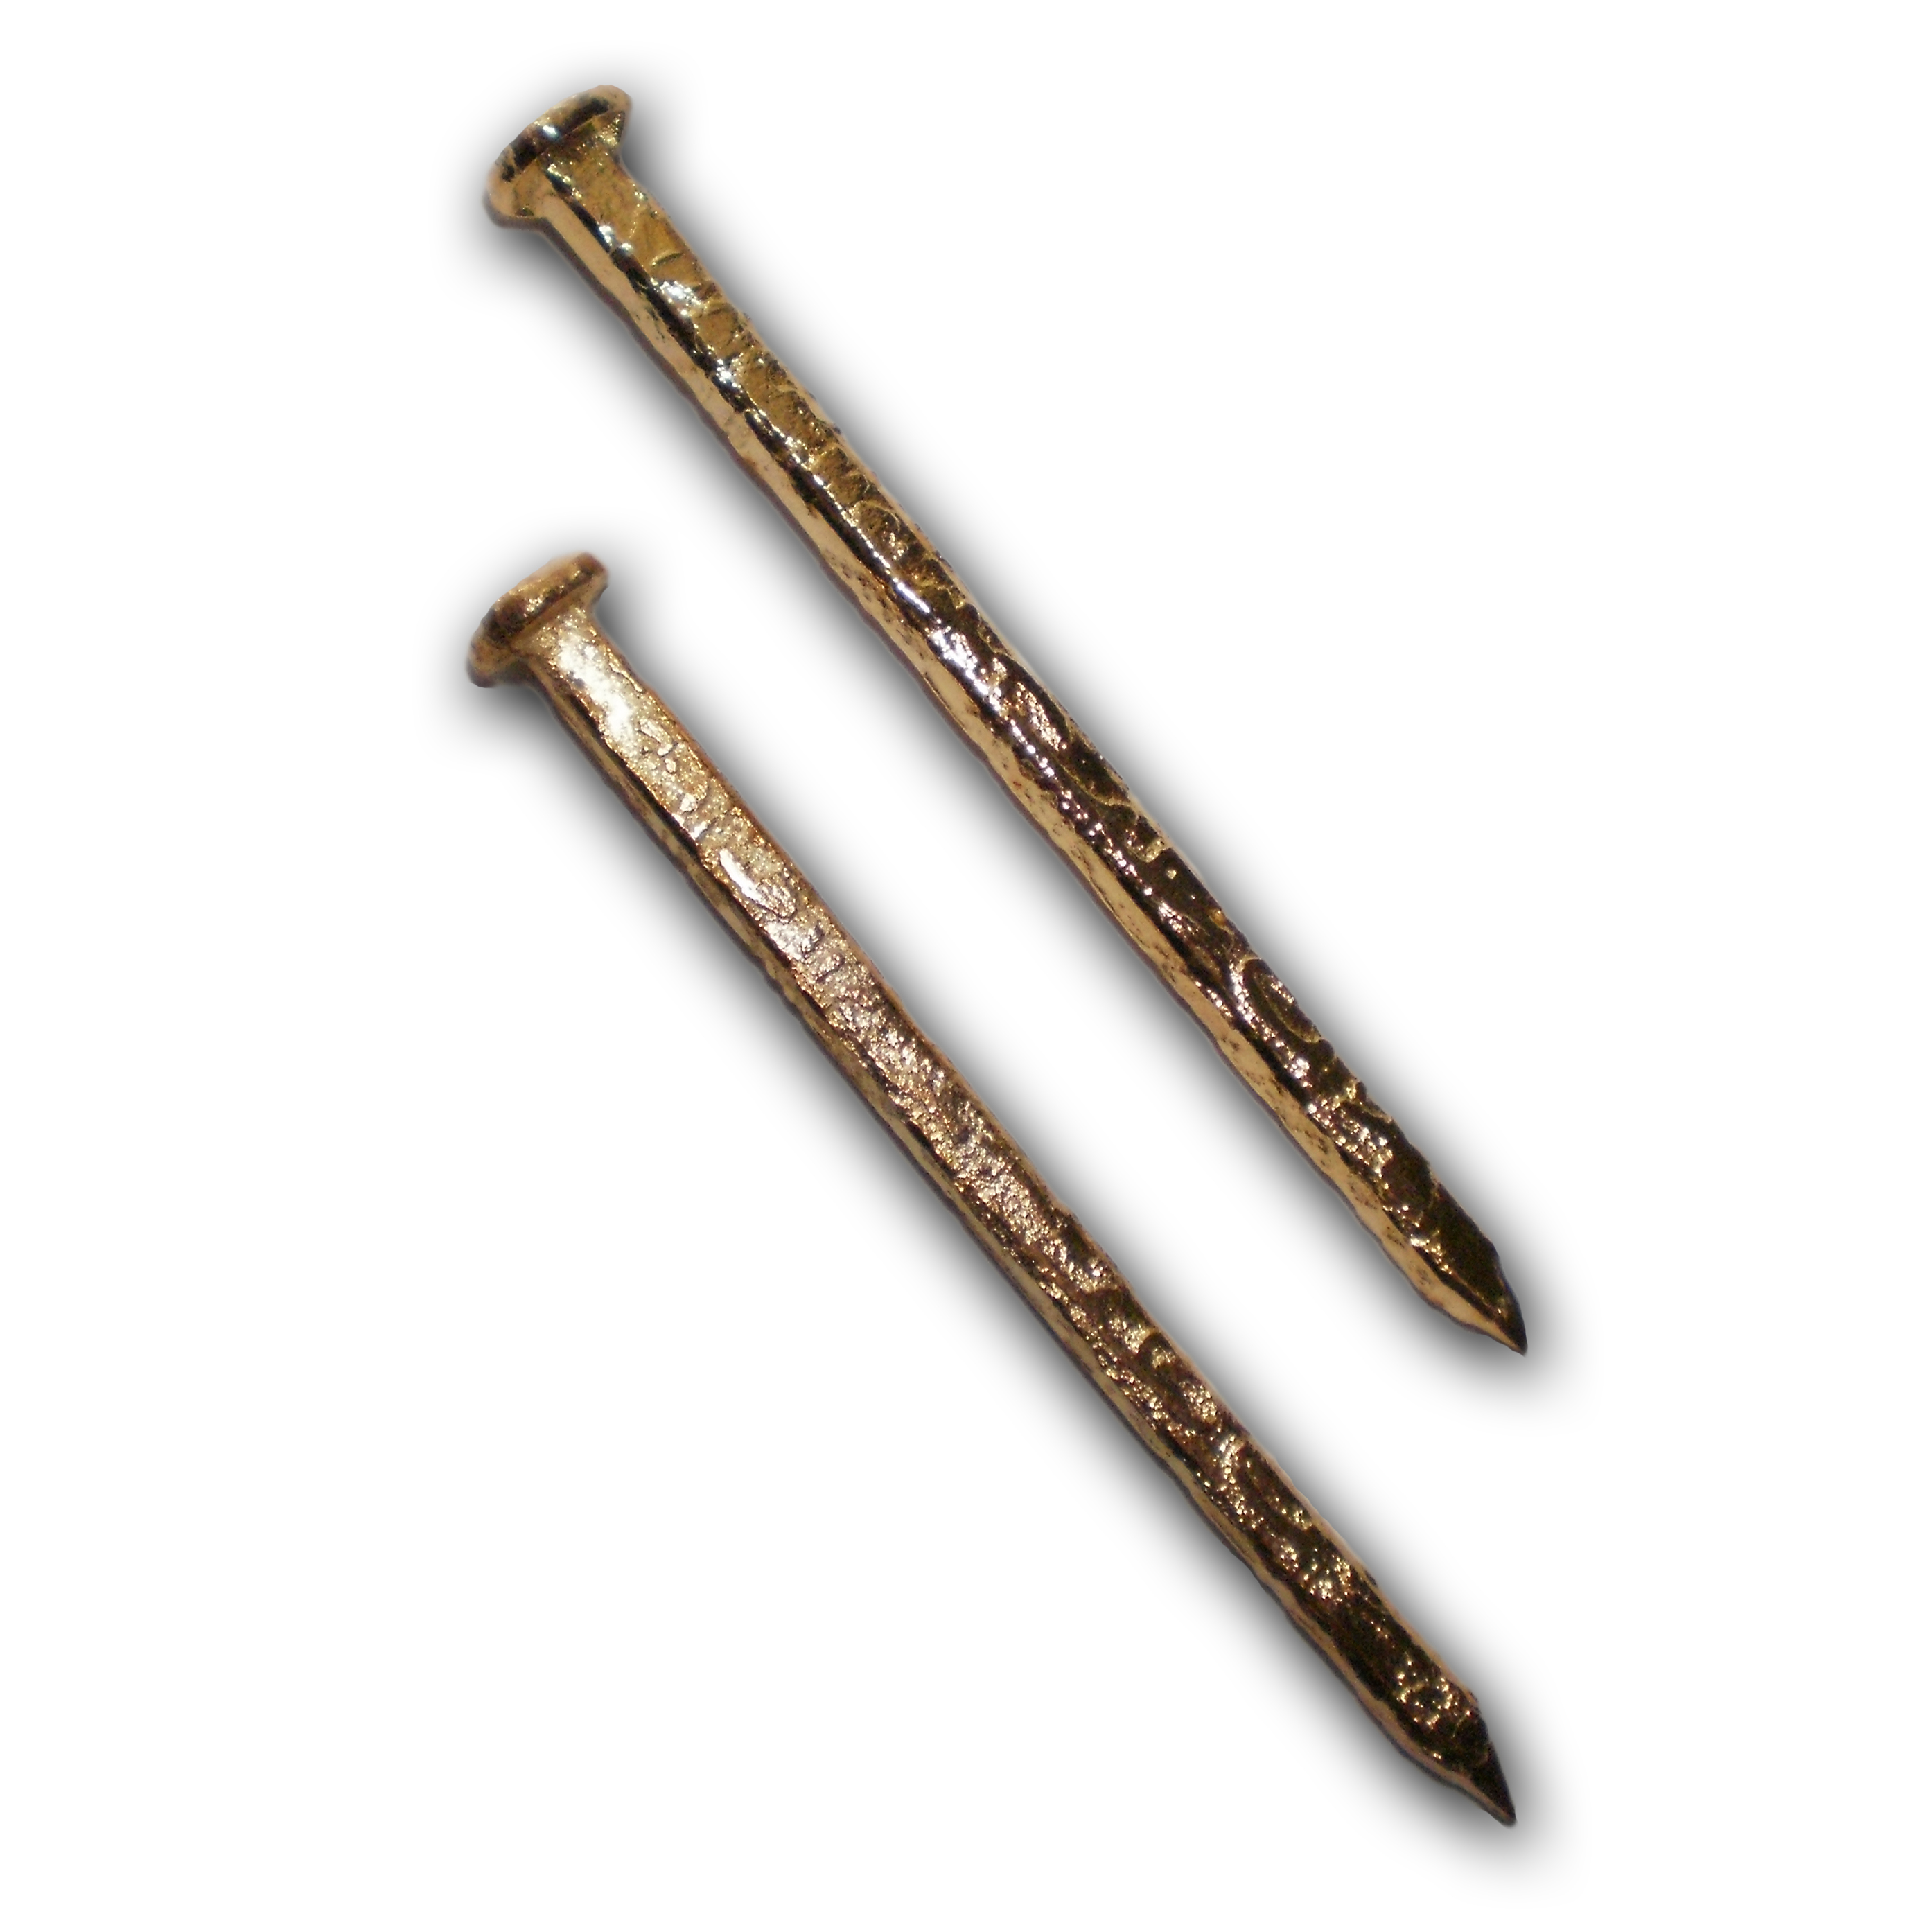 The brass nail with sacred Arabic inscriptions is a most unique item of Islamic magic featuring one of the most powerful Arabic spells.